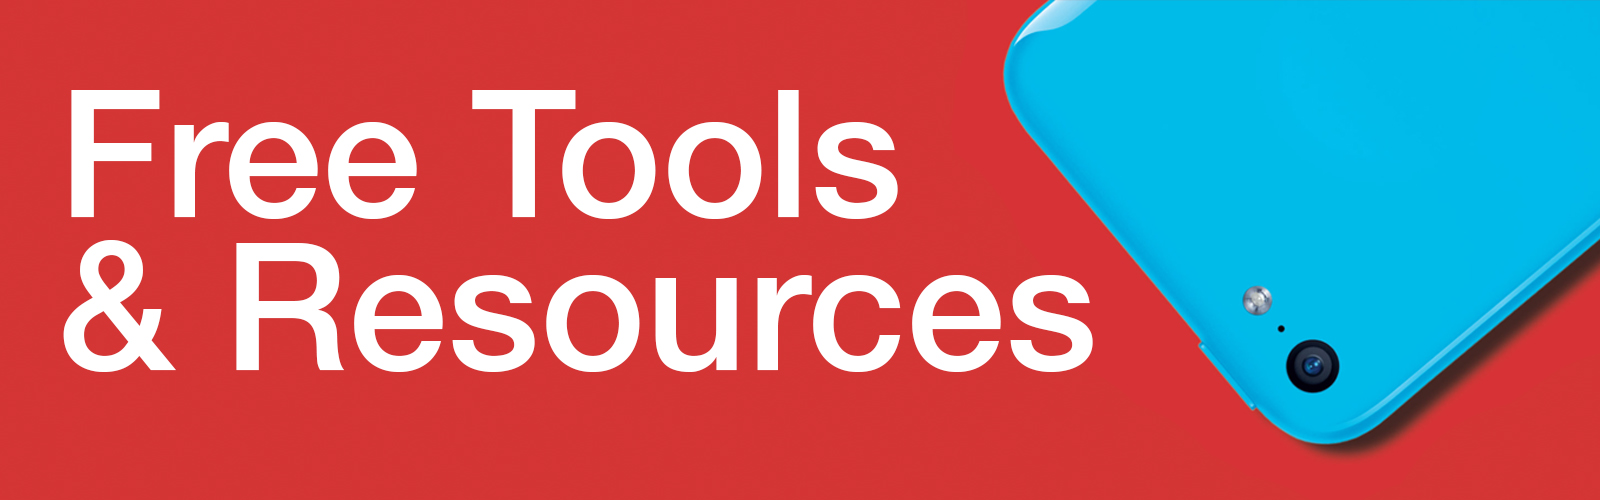 free tools and resources